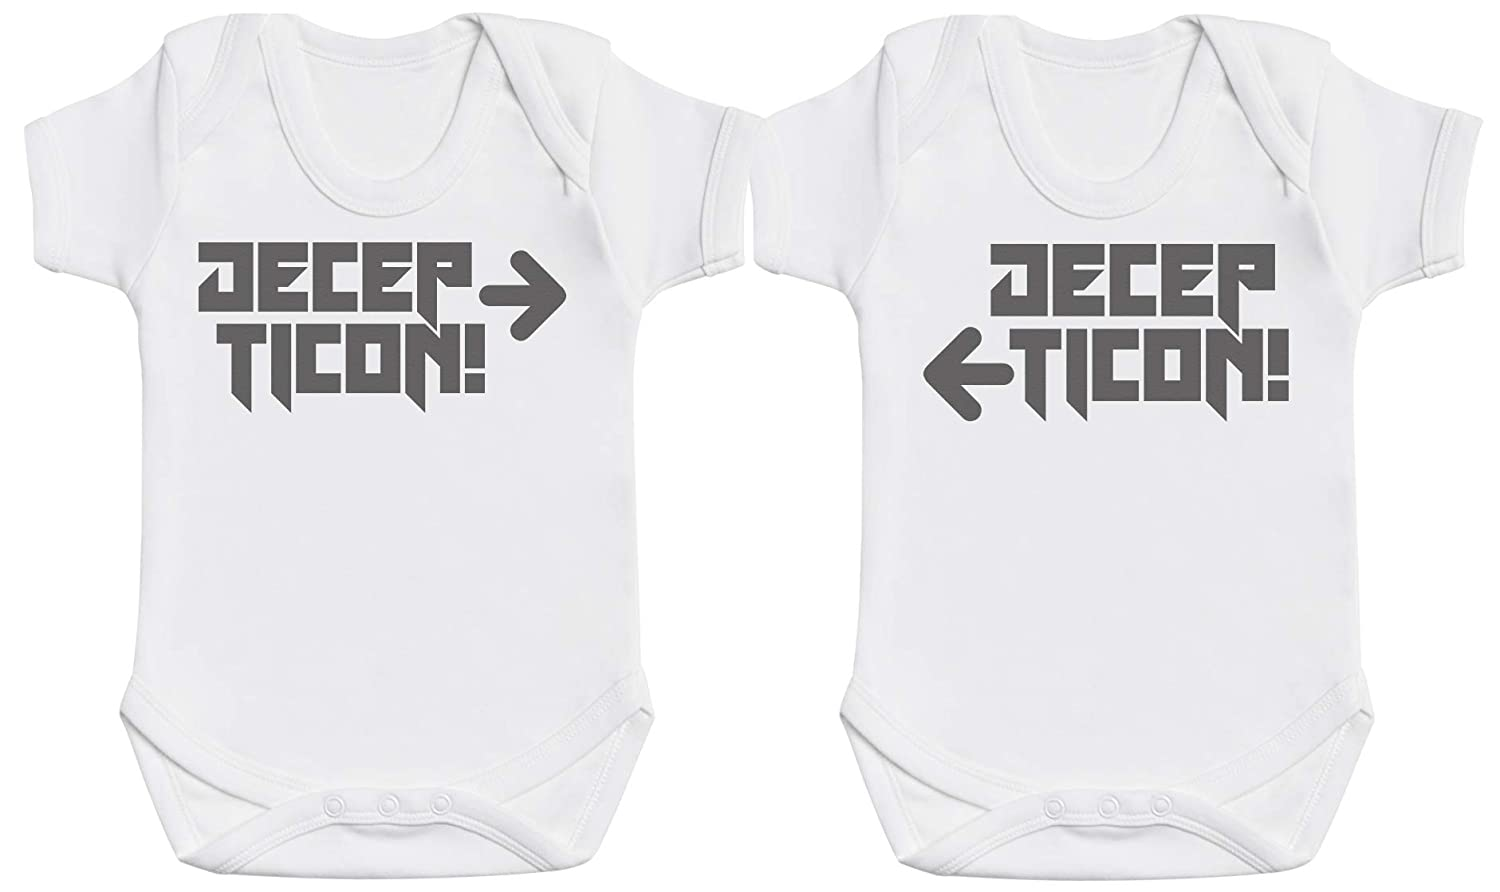 Decepticon Twins Baby Twins Gift, Twin Baby Bodysuits, Baby Twins Clothing Gift